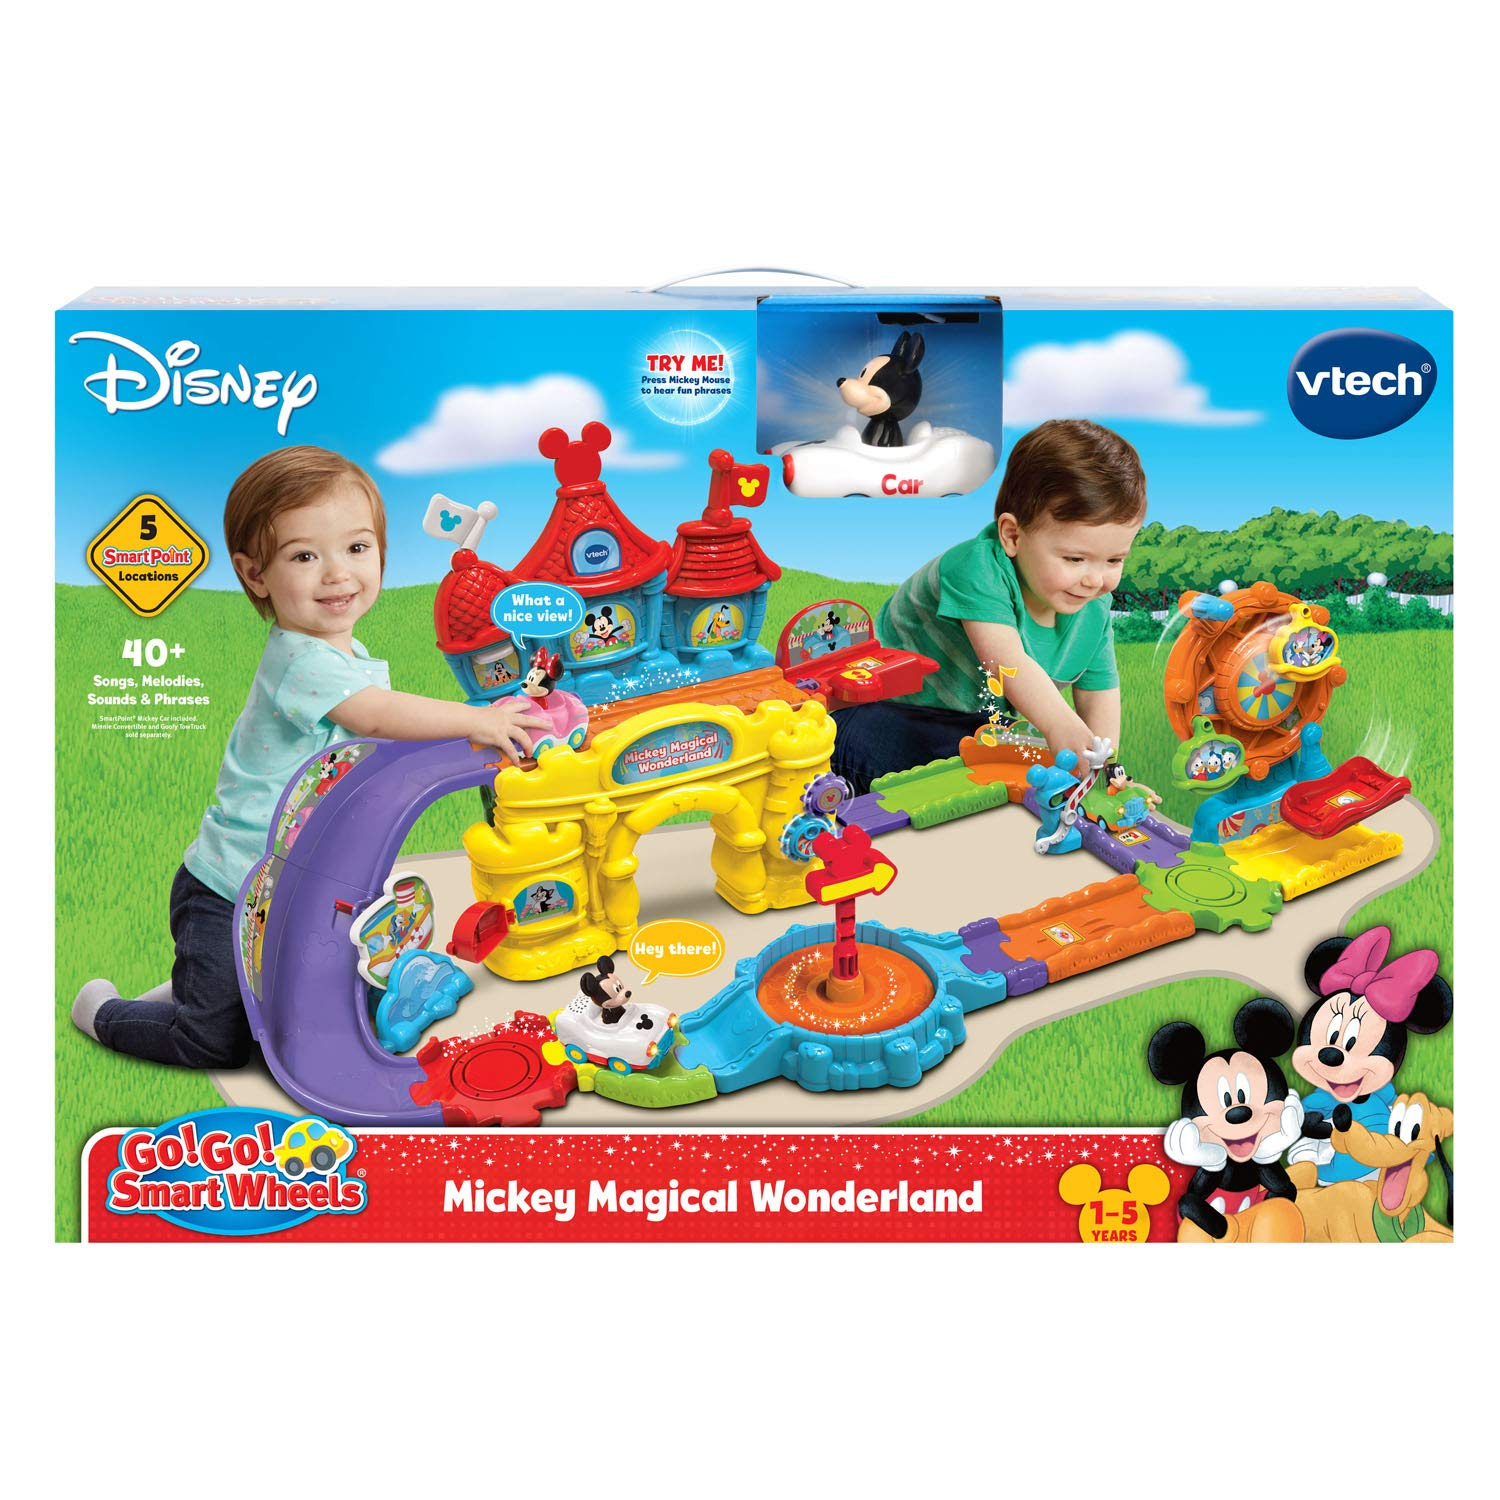 VTech Go! Go! Smart Wheels Mickey Mouse Magical Wonderland, Multicolor by VTech (Image #7)